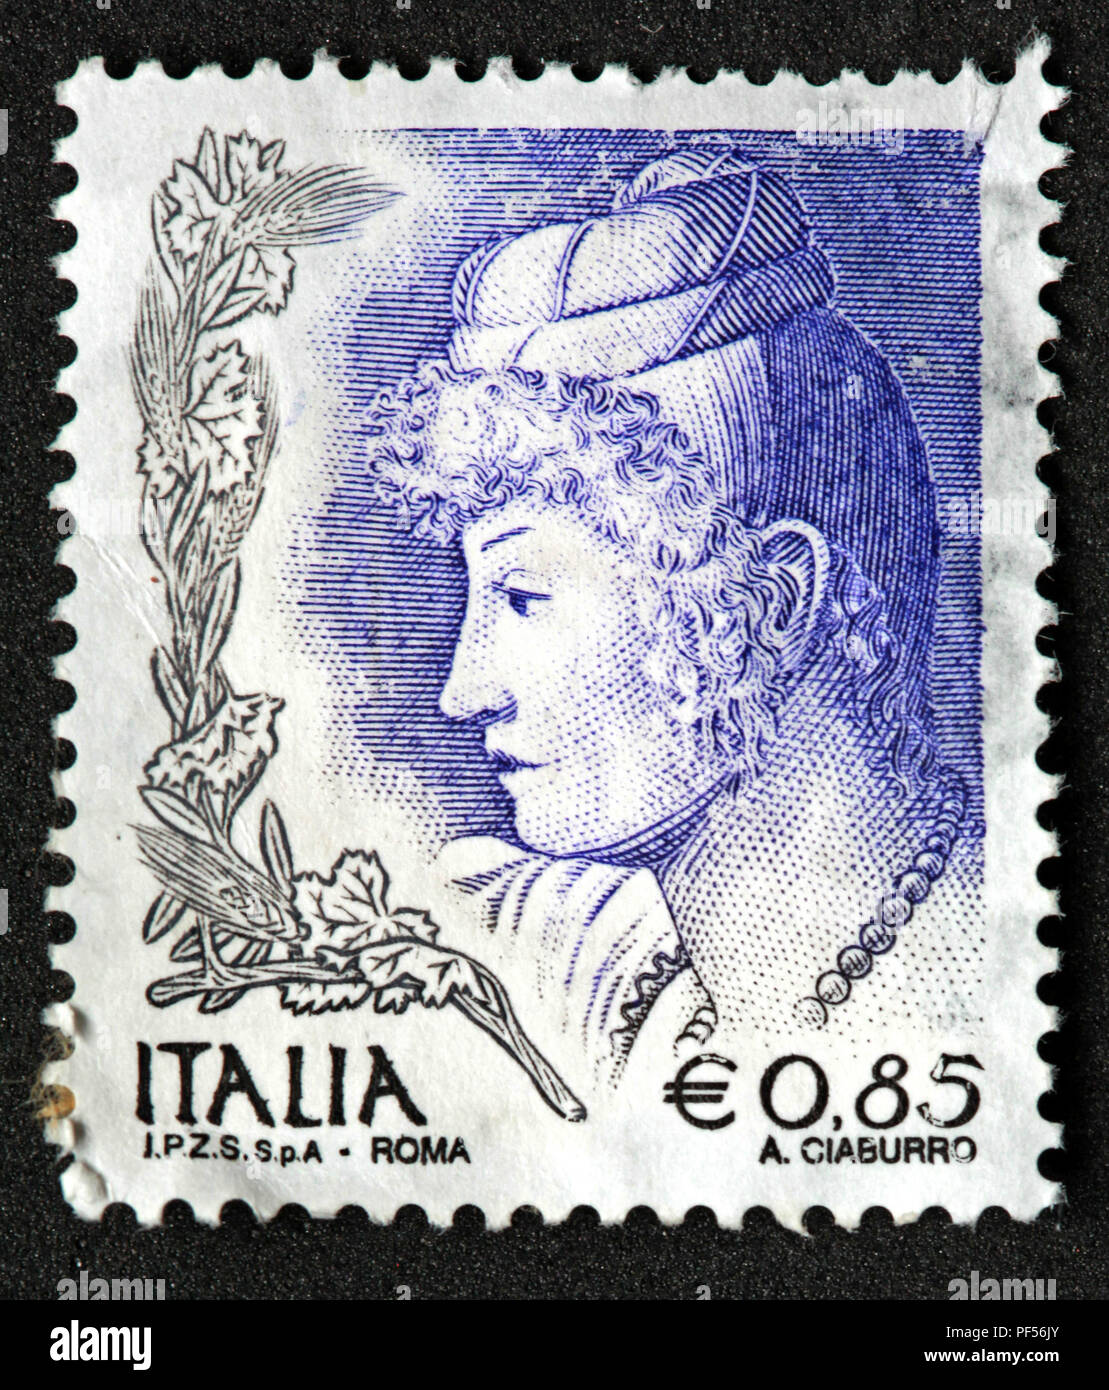 Gotonysmith,@Hotpixuk,Hotpixuk,rare old stamps,used stamps,Postal,letters,letter,communication,print,analogue,historic stamps,Used blue stamp,used blue Italia stamp,blue Italian stamp,used,blue,IPZS,Spa stamp,Roma,0.85E,0.85 euro,IPZS Spa,Italian stamp,Italy stamps